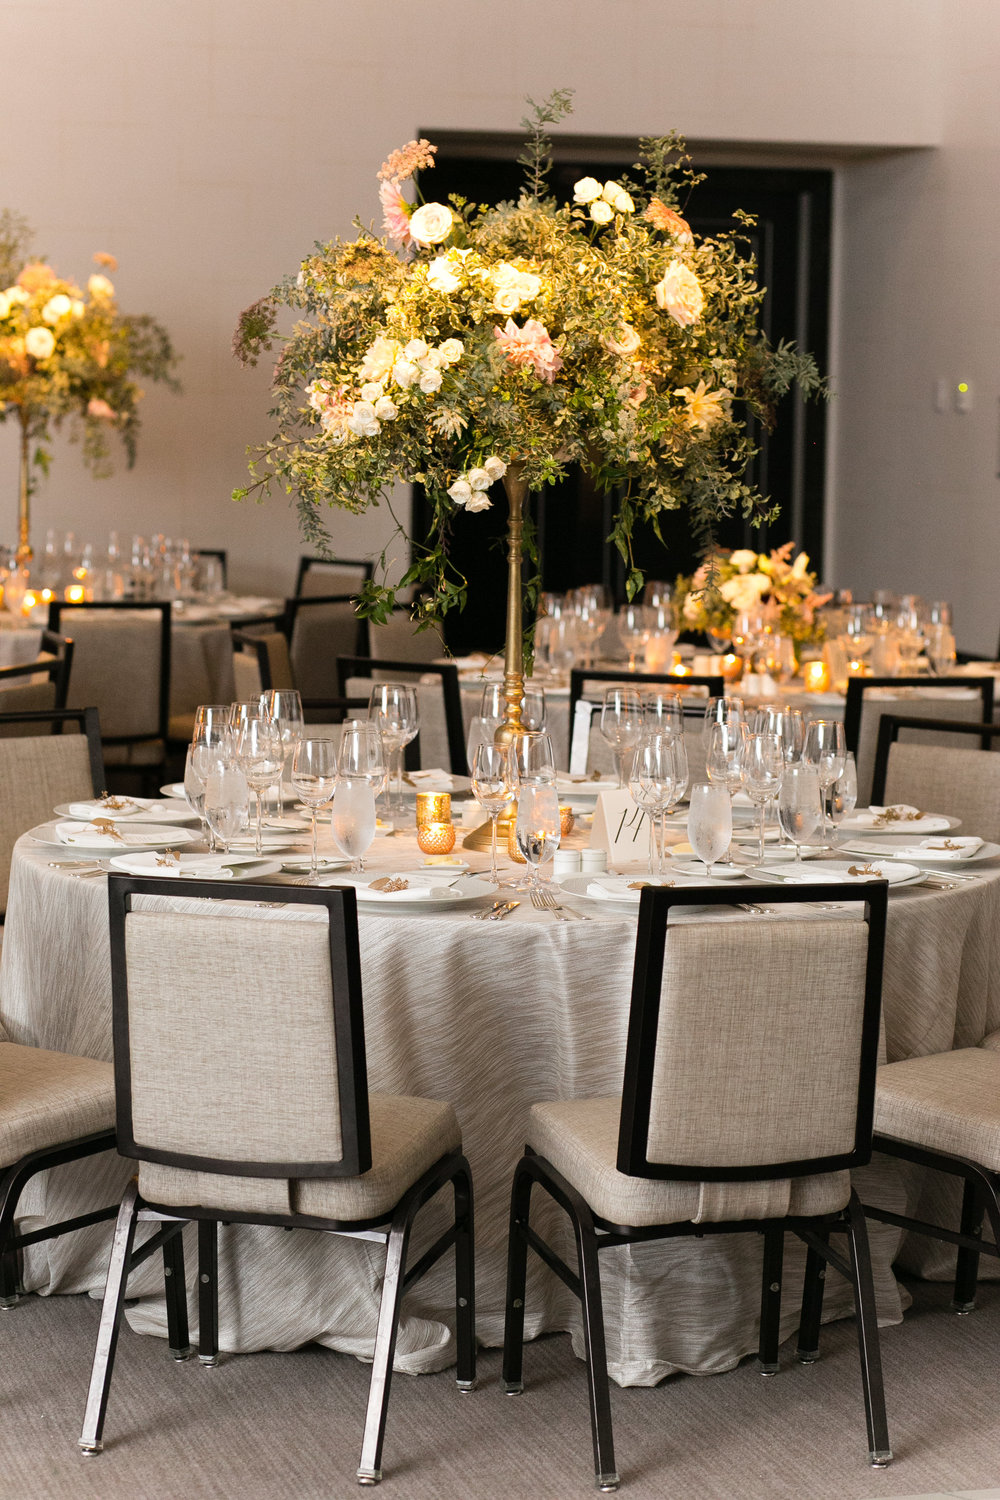 Fleur-Inc-Emilia-Jane-Photography-Estera-Events-Langham-Hotel-Chicago-Wedding-Tall-Centerpiece